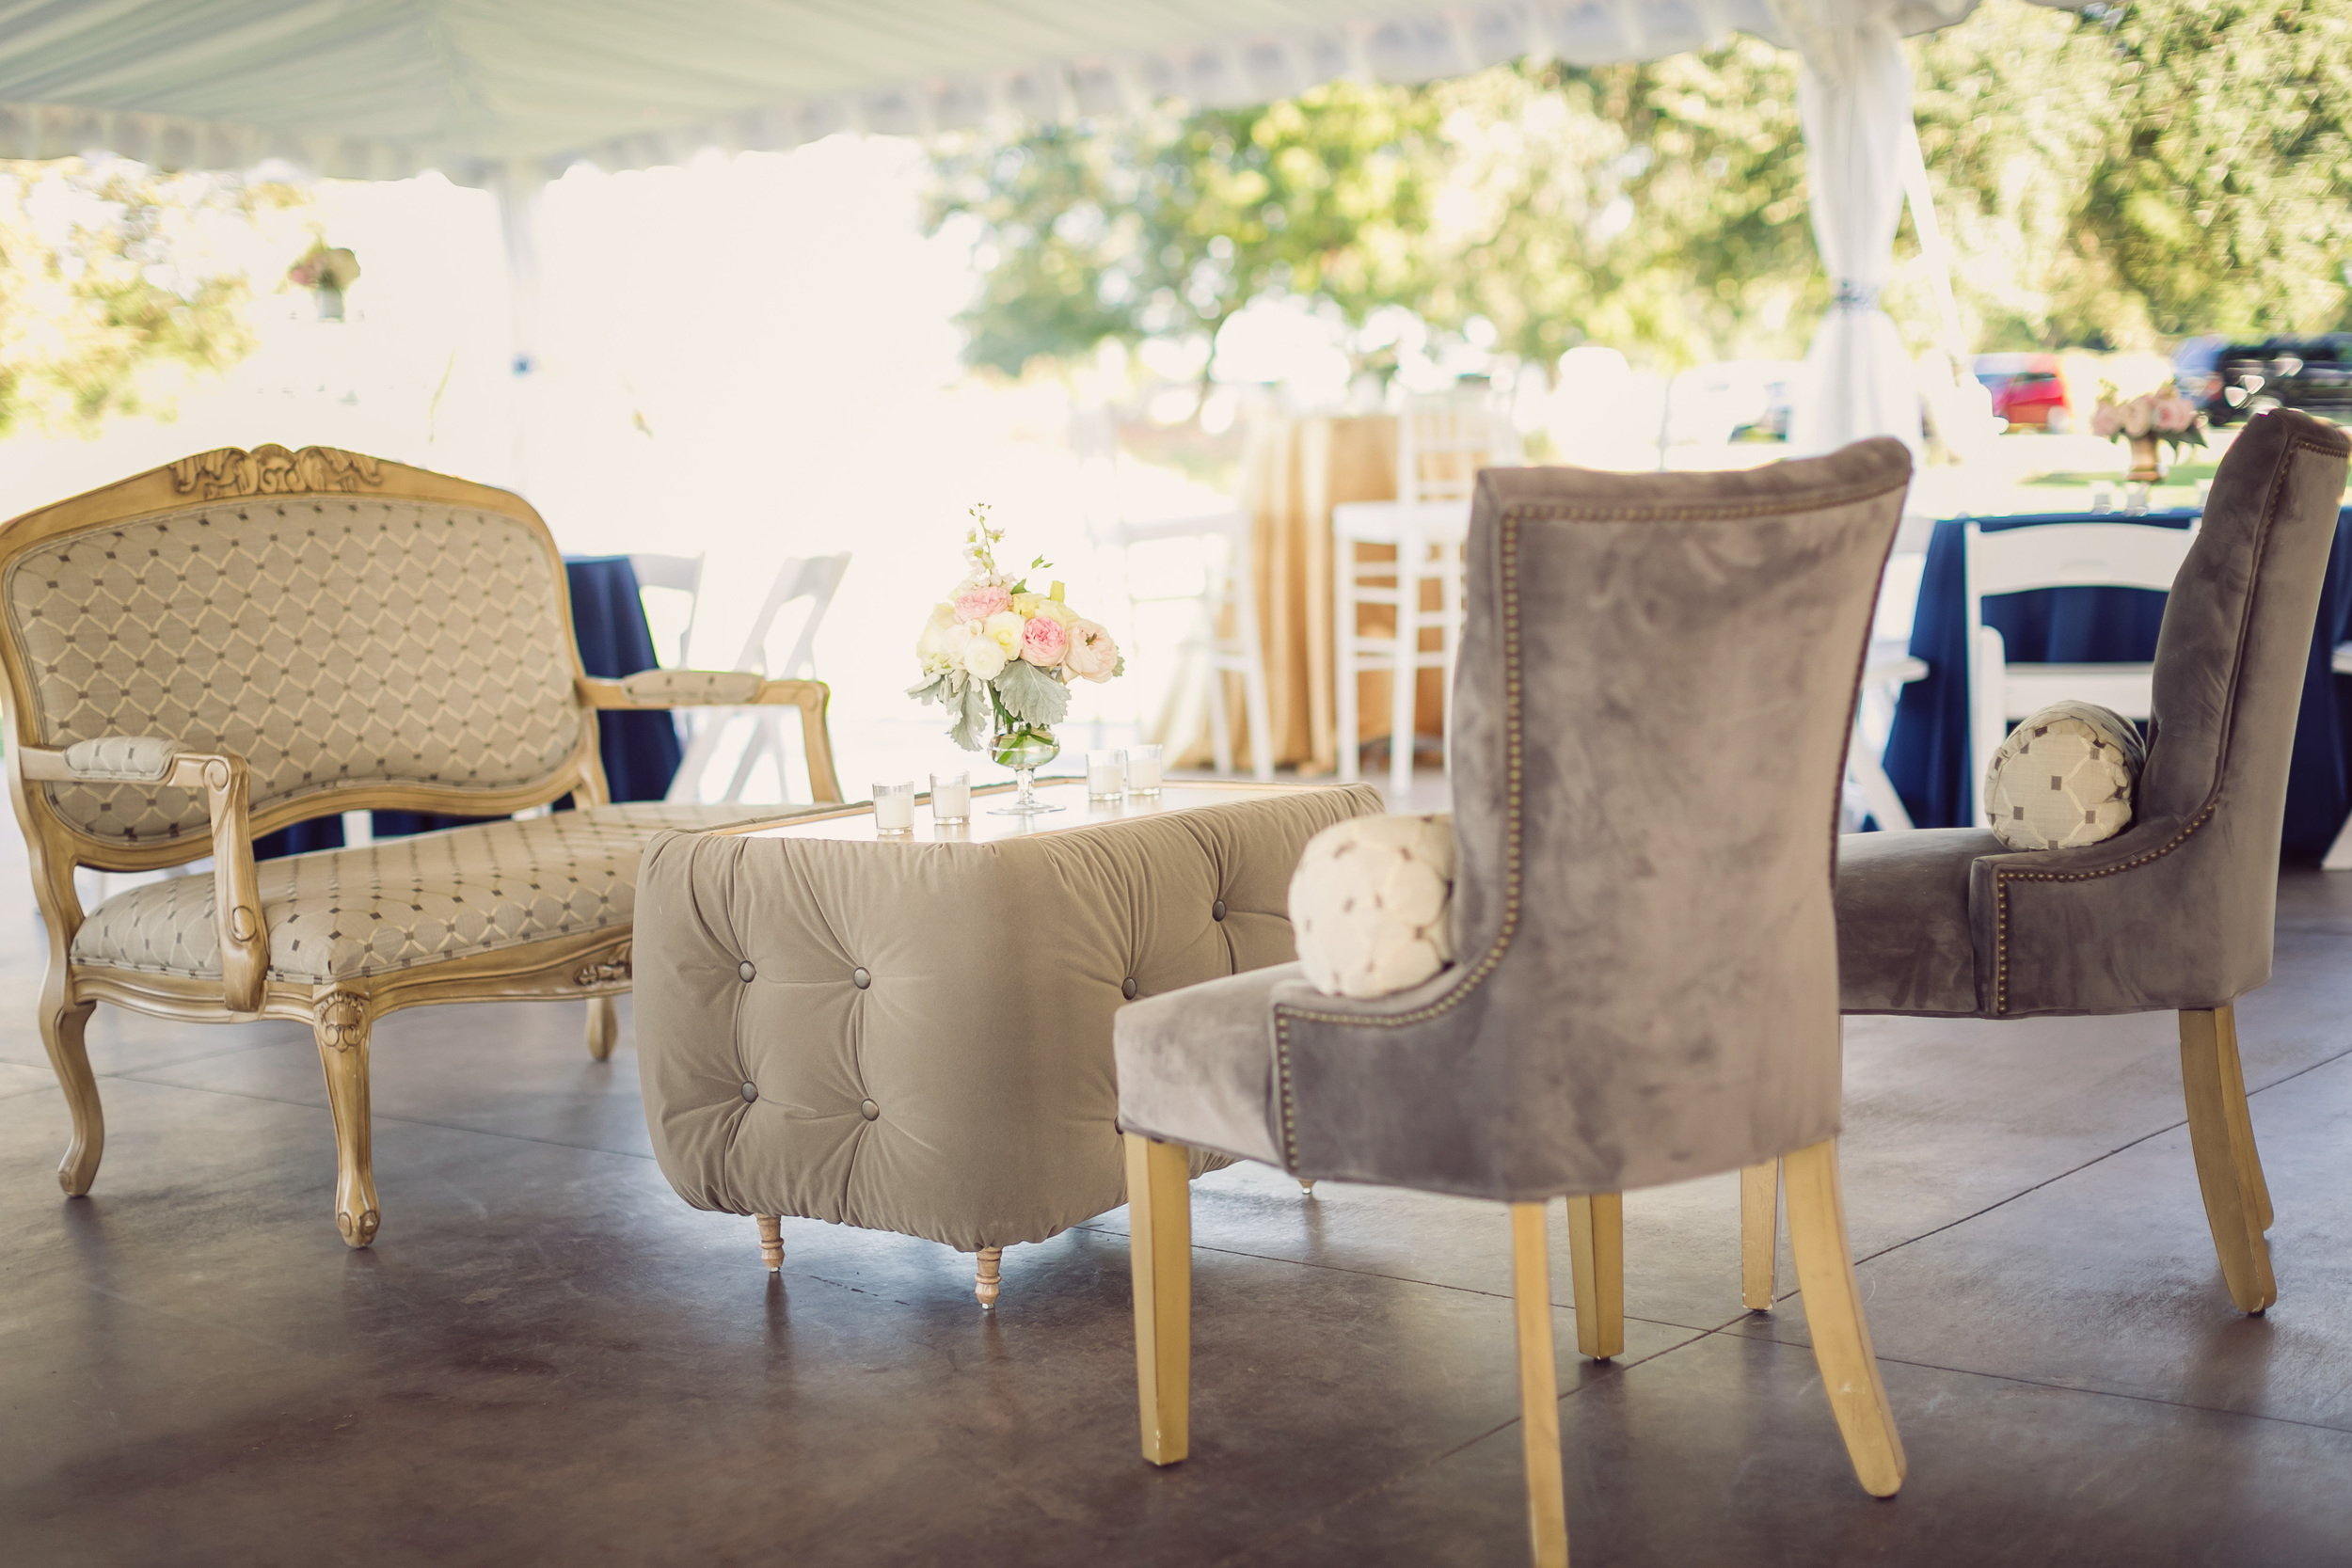 Charlesotn wedding lounge furniture from Eventworks